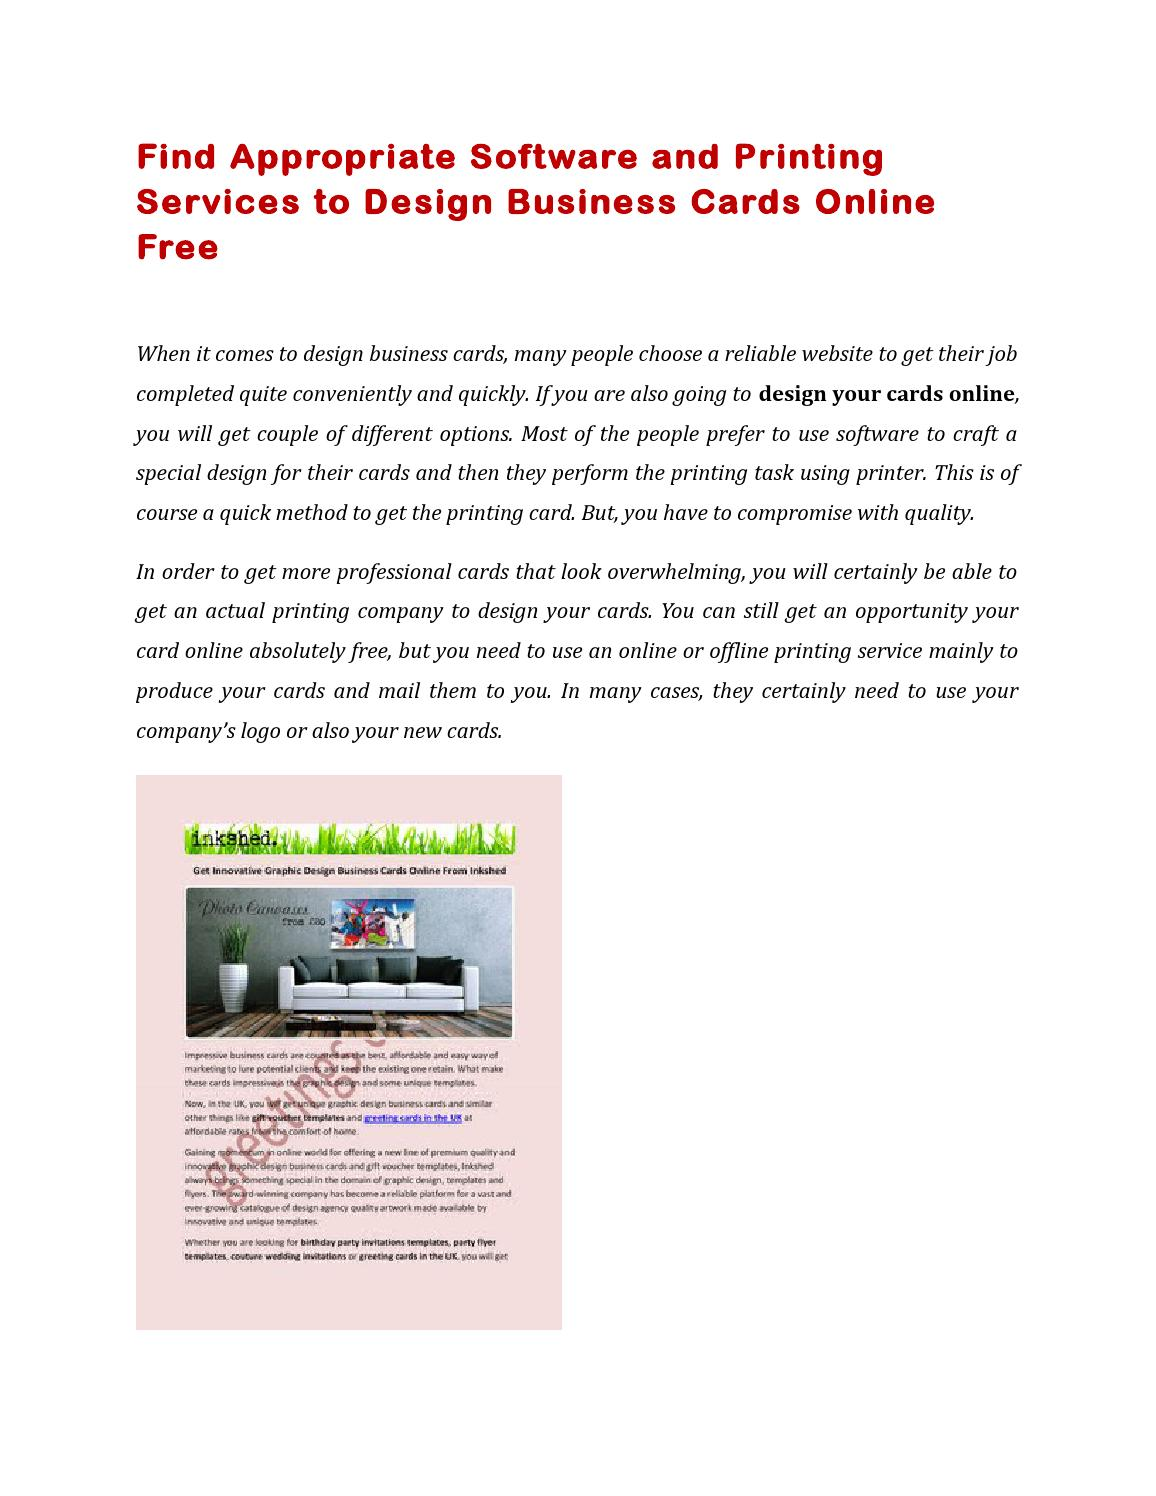 Find appropriate software and printing services to design business ...